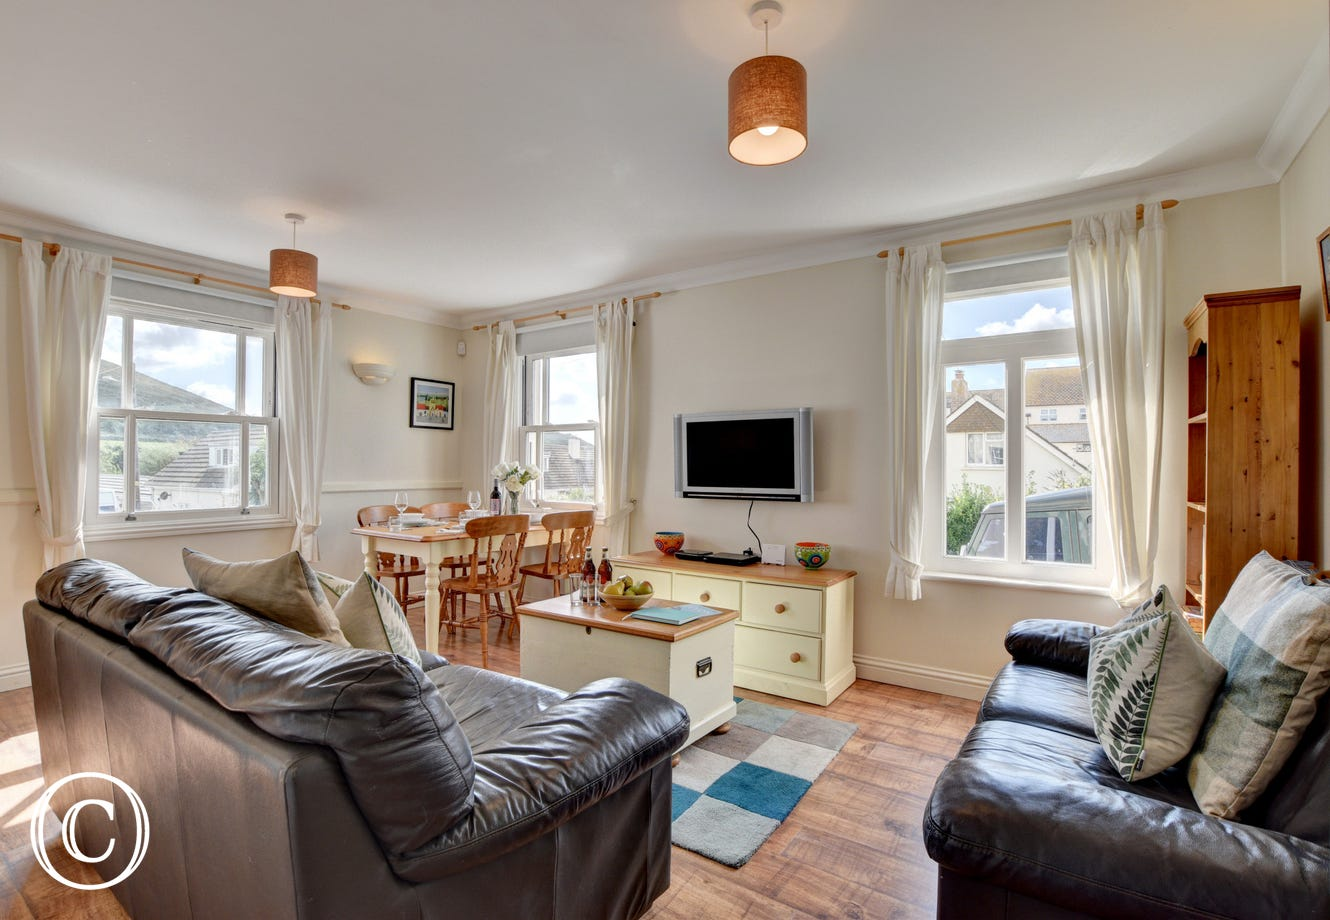 The apartment has a lovely feel to it, with comfortable leather sofas to relax in after a day of exploring